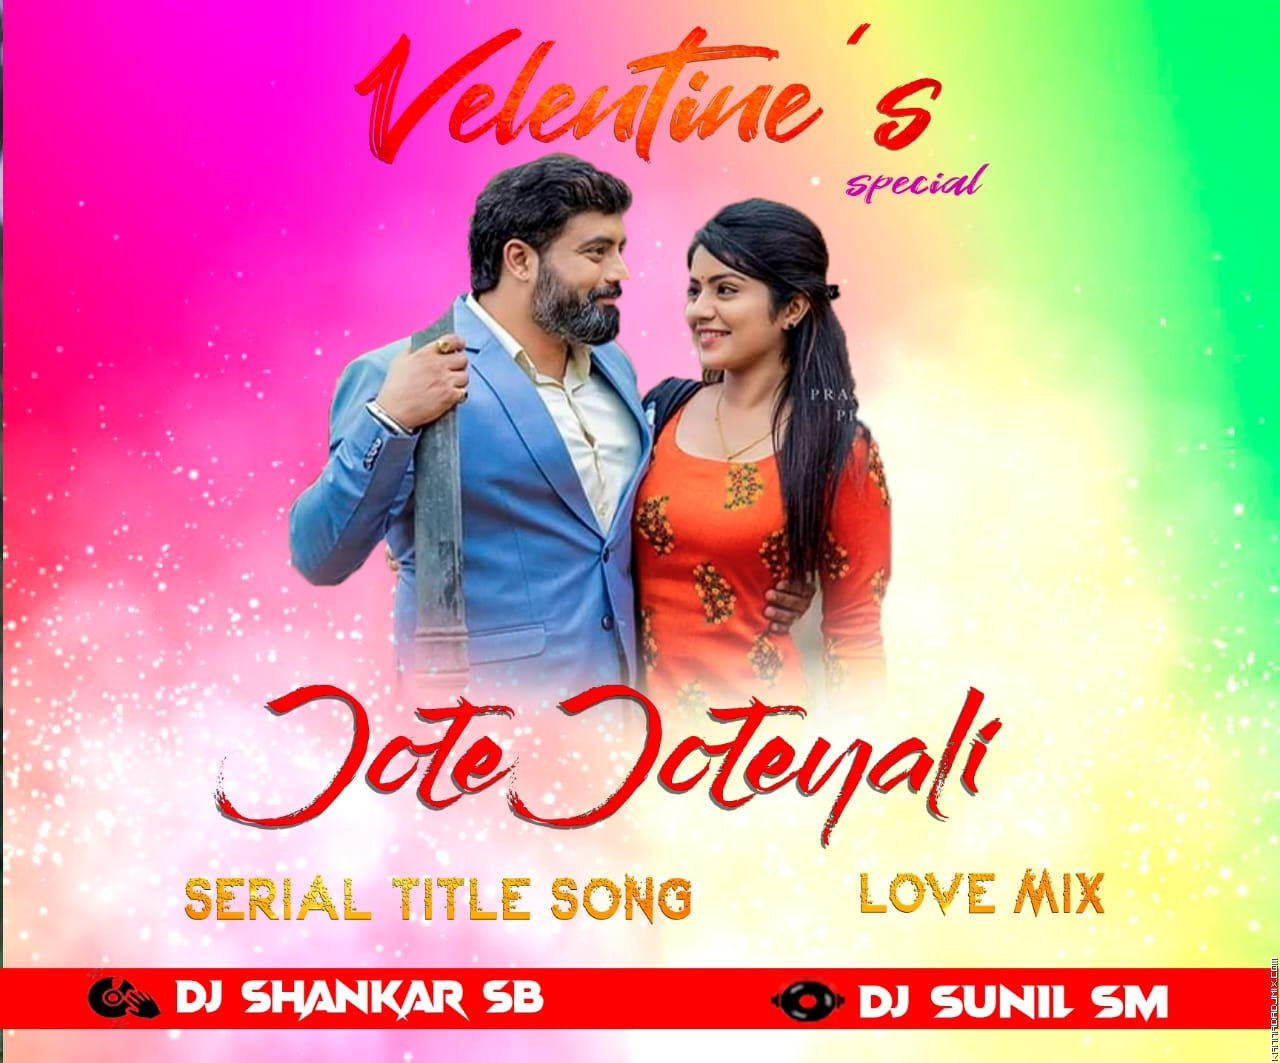 JOTE_JOTEYALI_Serial Title Song REMIX DJ SHANKAR SB DJ SUNIL SM.mp3